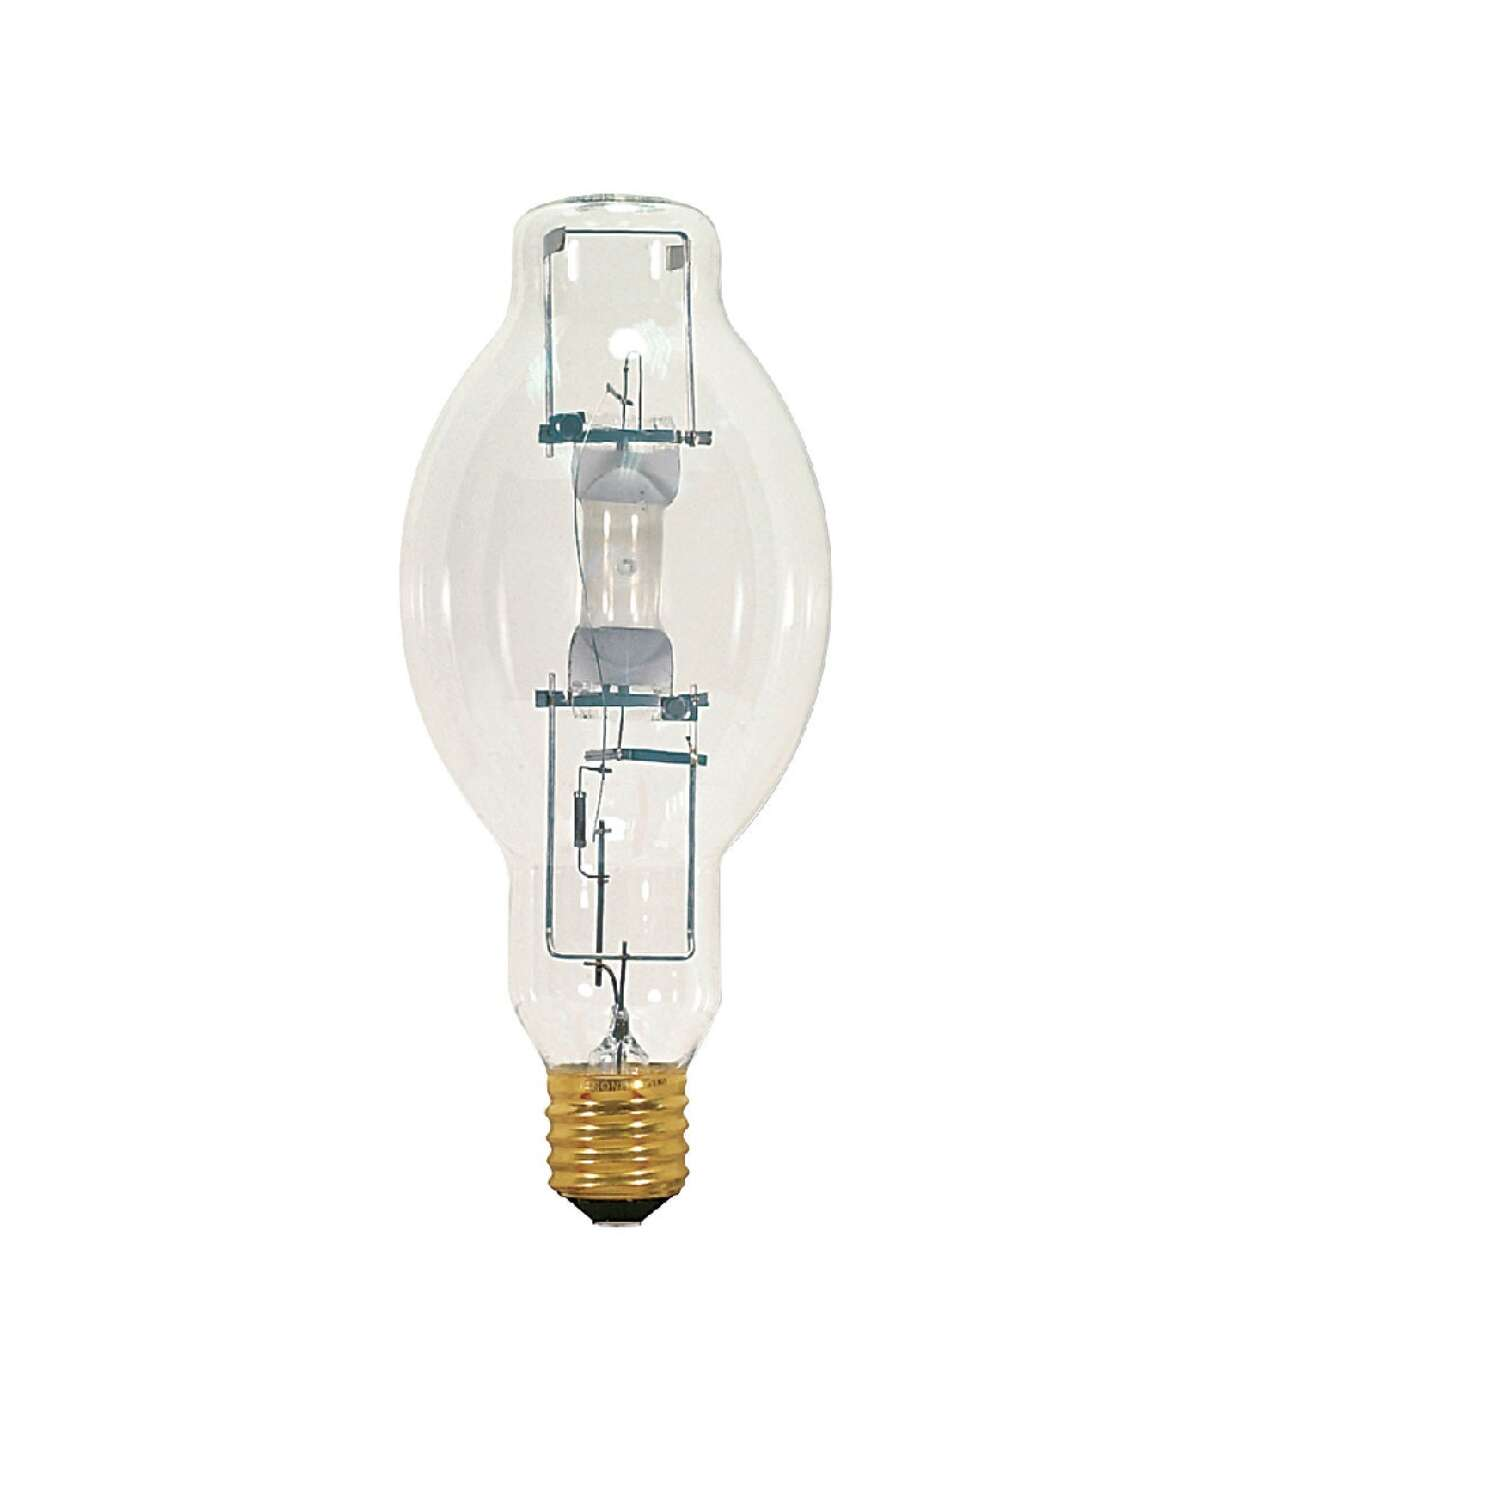 Satco  1000 watts BT37  HID Bulb  110000 lumens Cool White  Metal Halide  1 pk